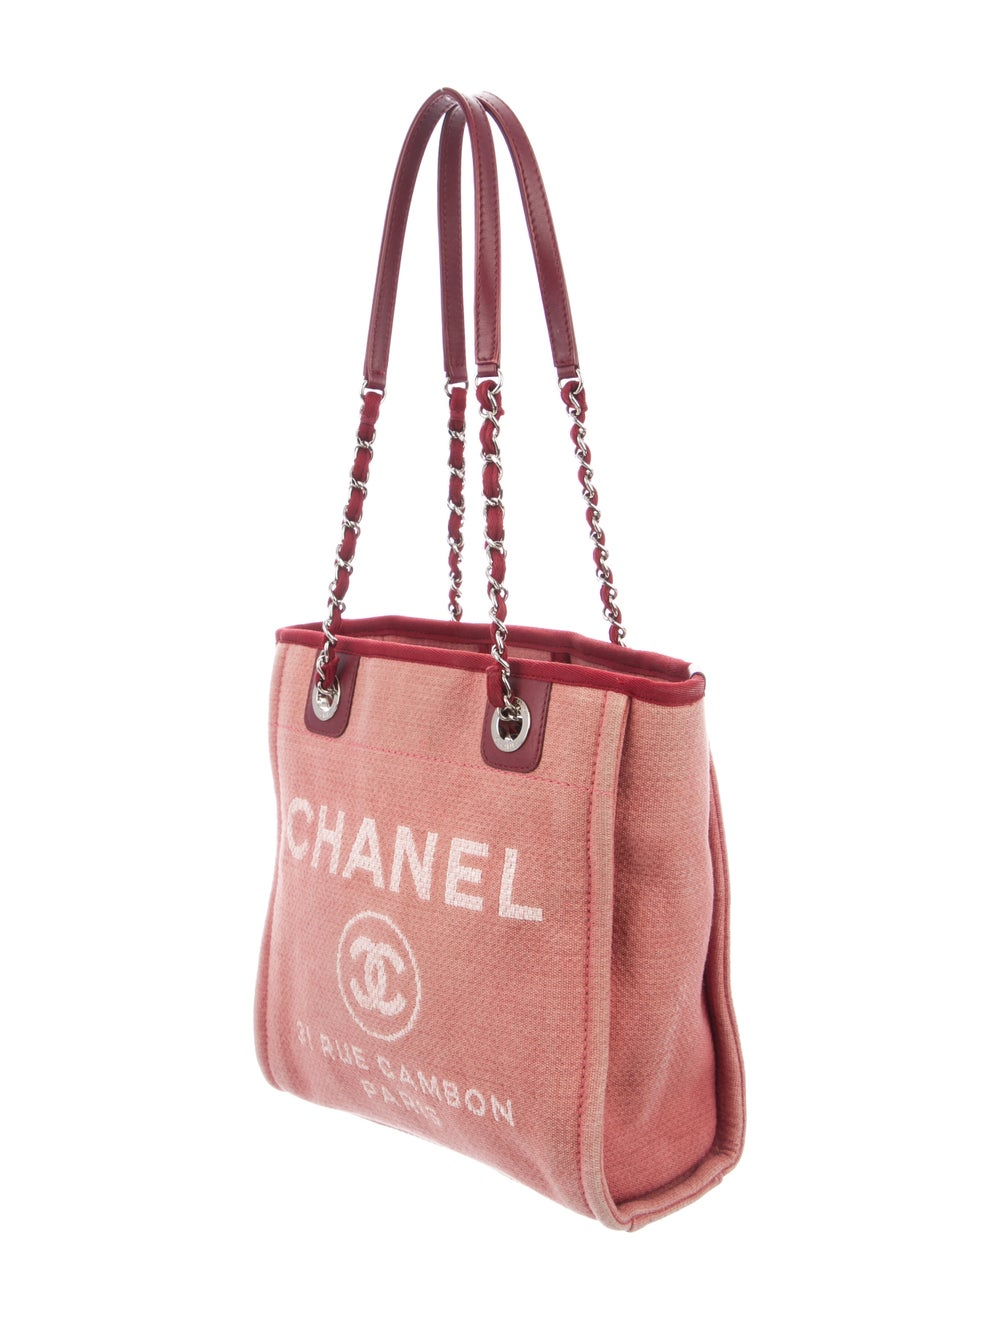 Chanel Small Deauville Bag Pink - image 3